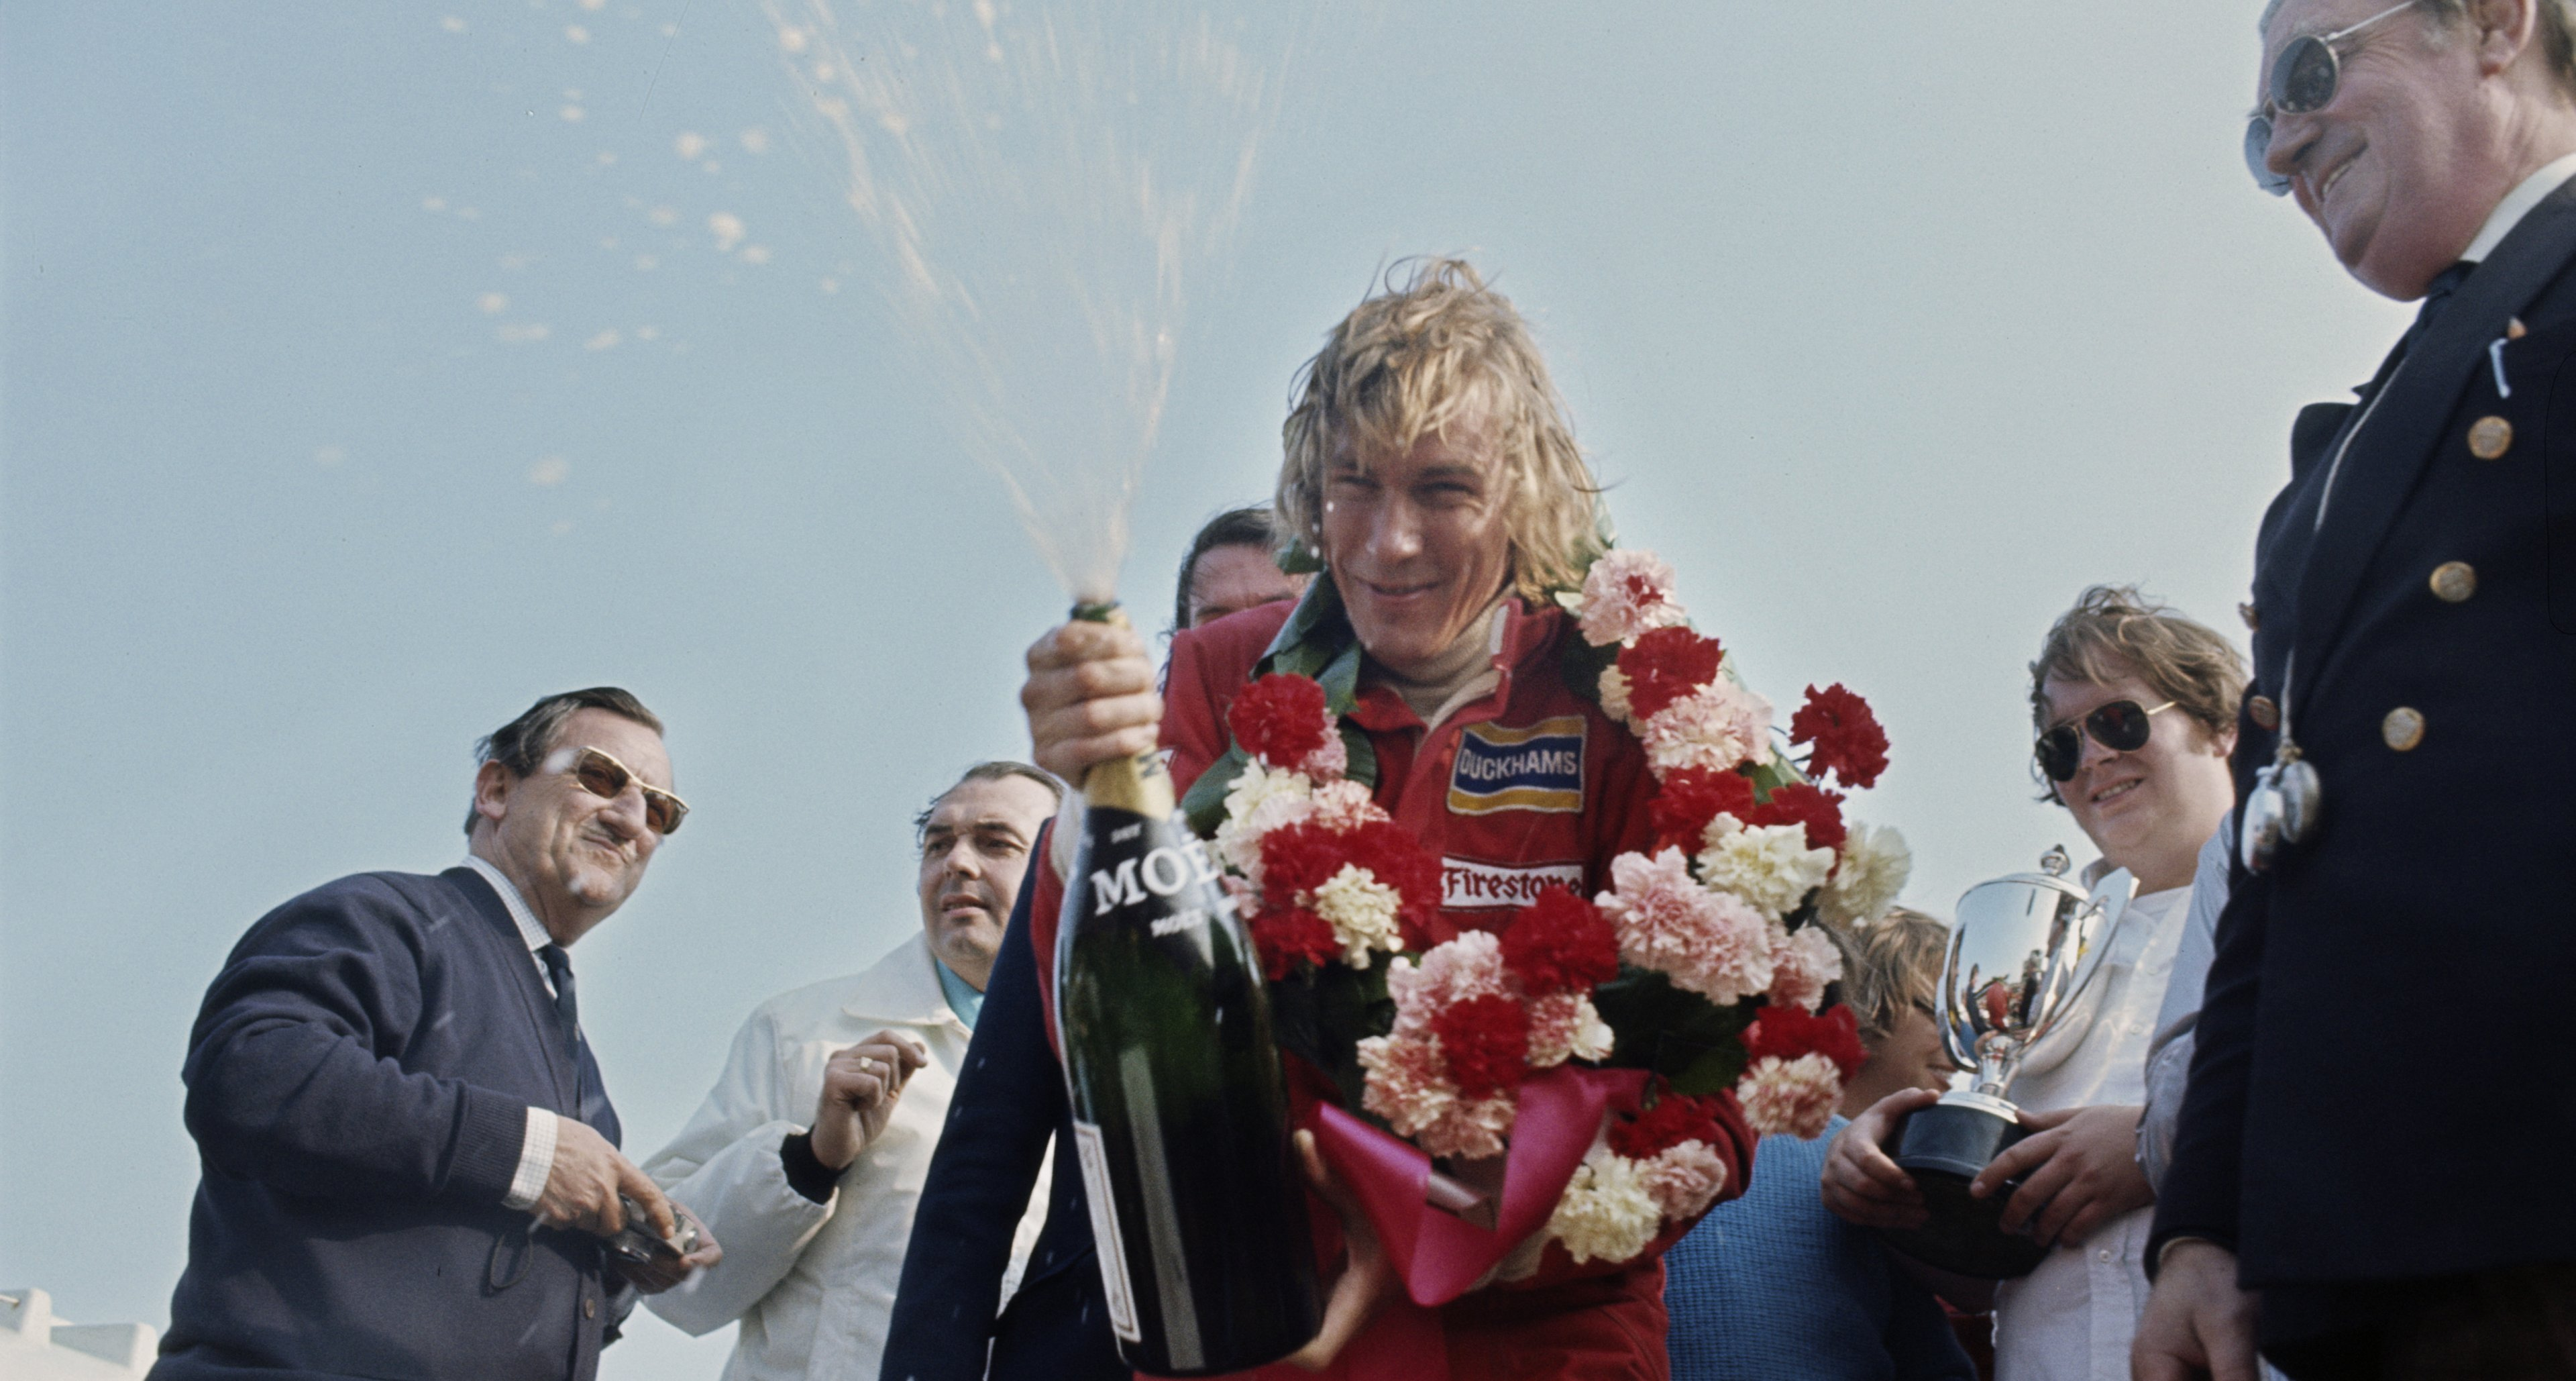 James Hunt at the presentation after the 26th British Racing Drivers Club International Trophy race, a non-championship Formula One event, held at Silverstone on 7th April 1974.